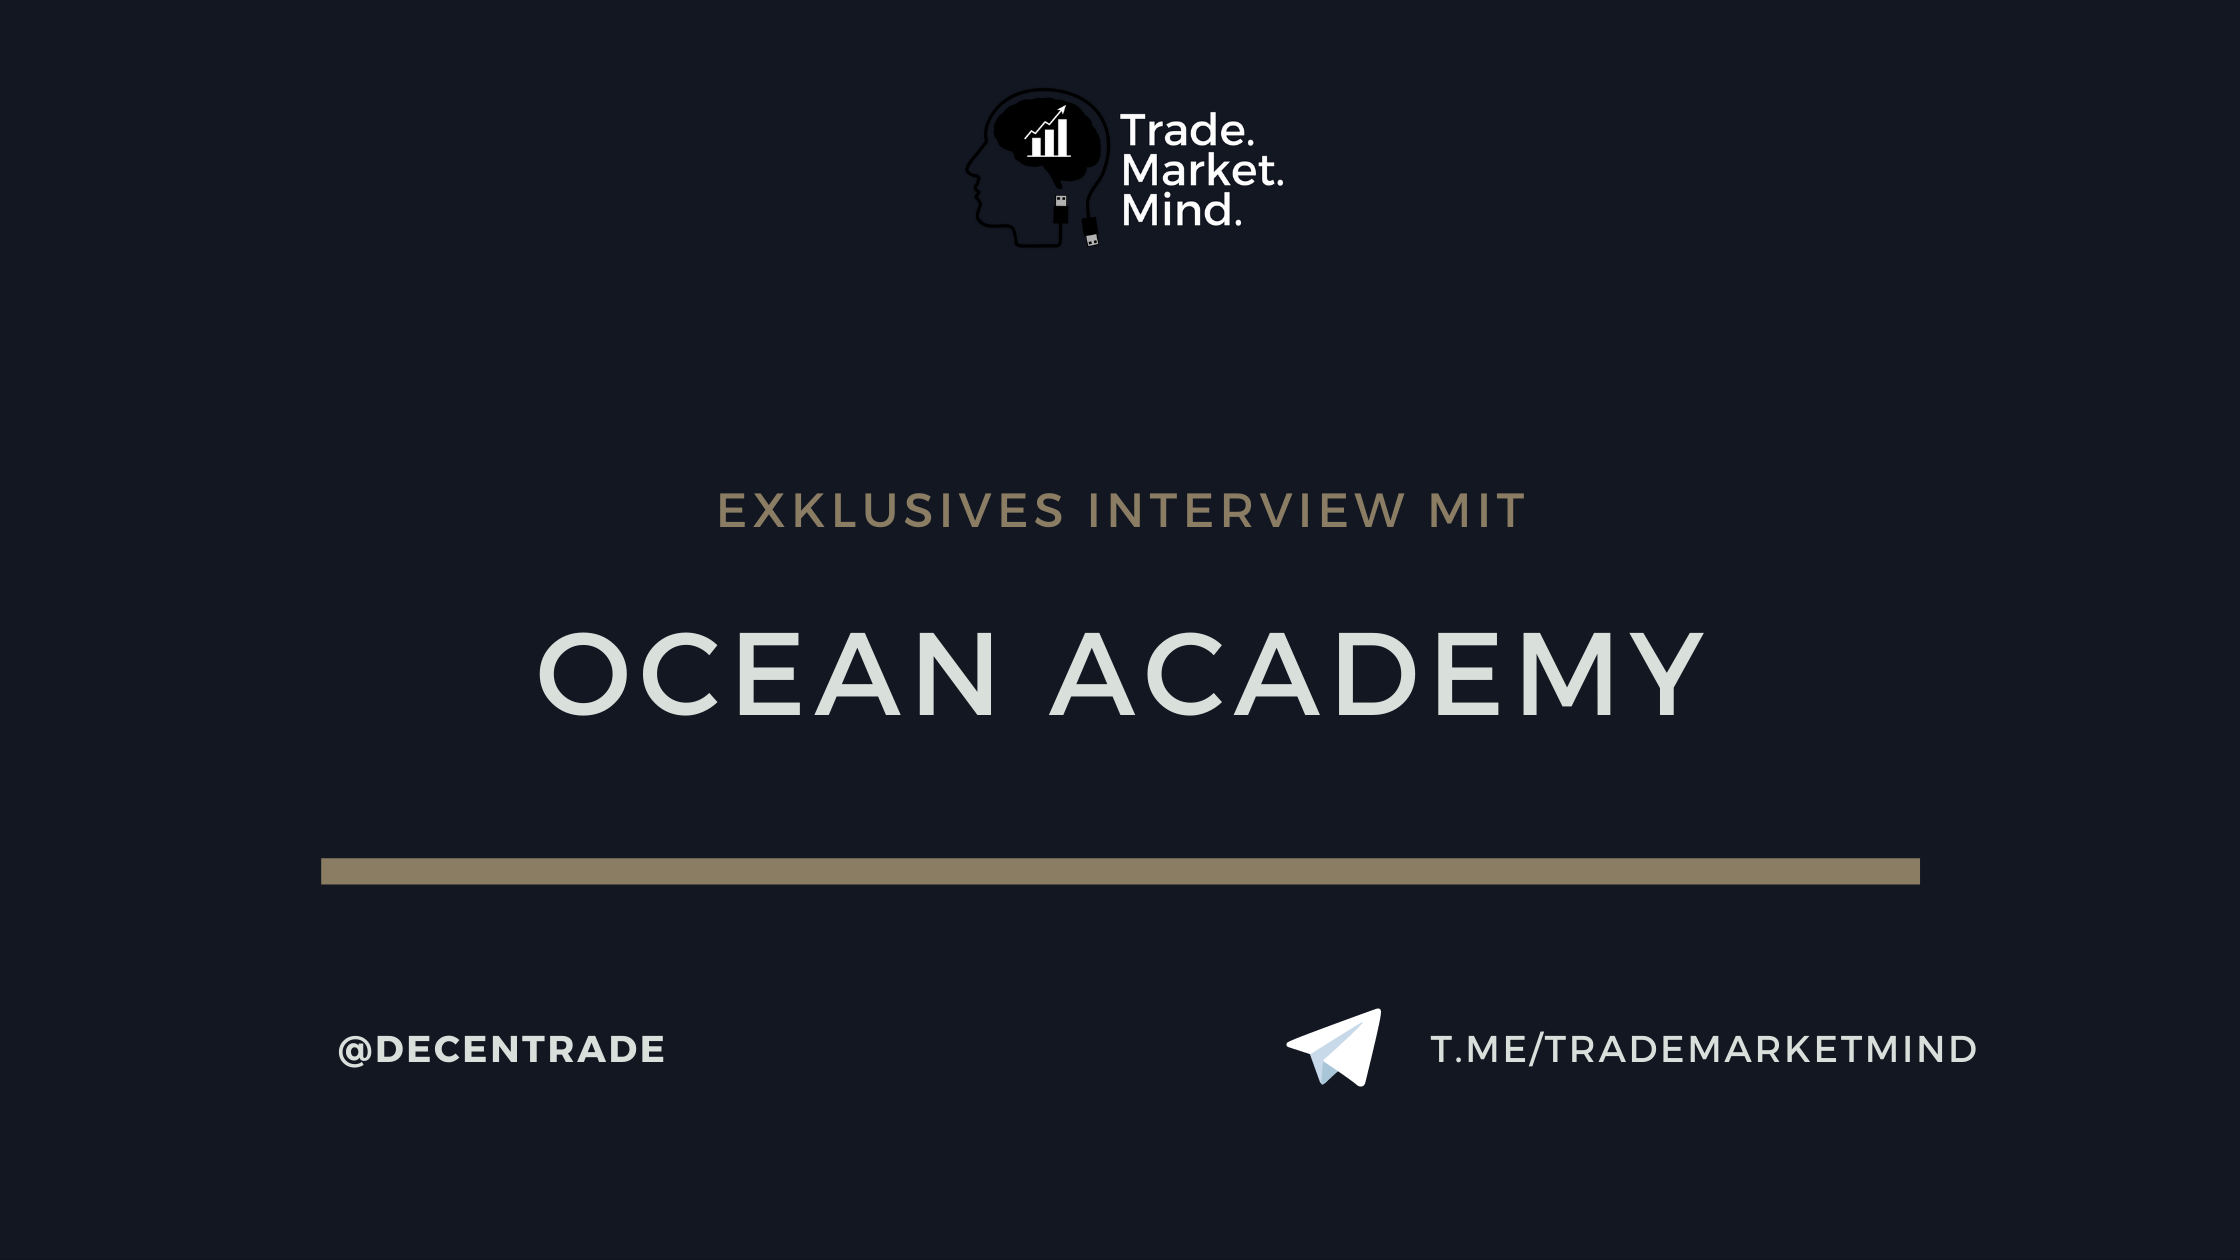 Exklusives Interview mit der Ocean Academy